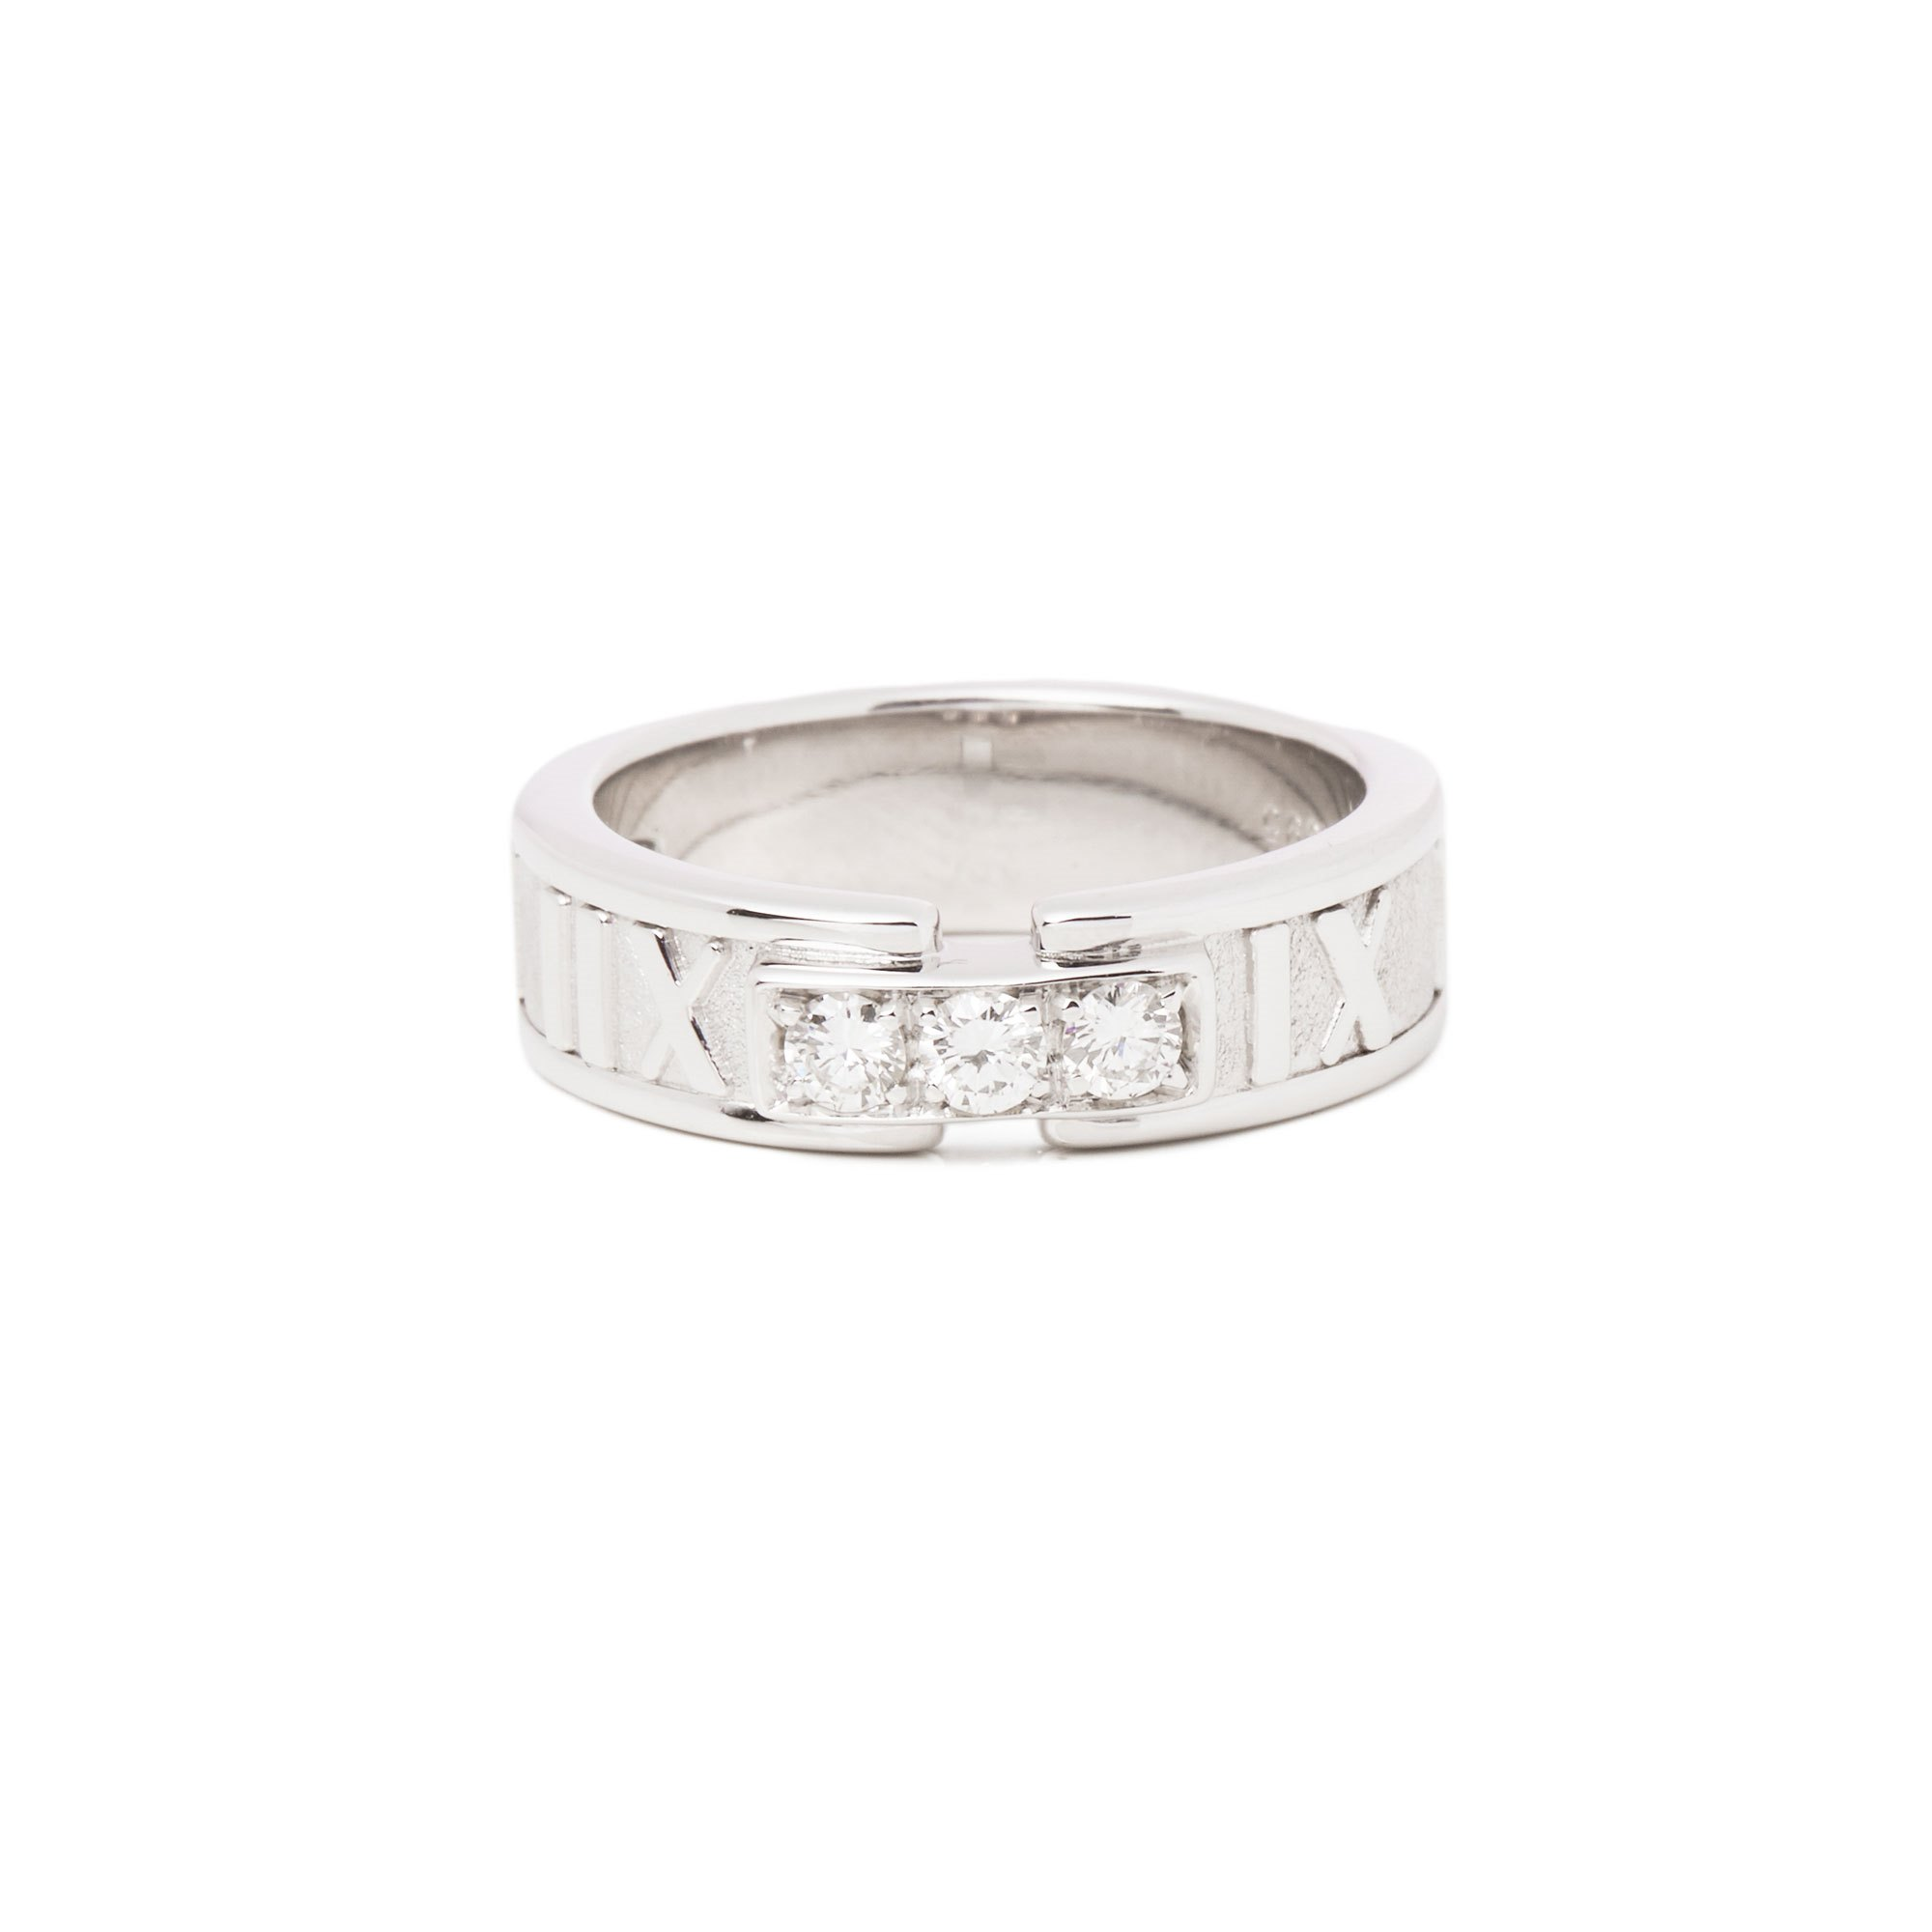 Tiffany & Co. Atlas Diamond 18ct White Gold Band Ring